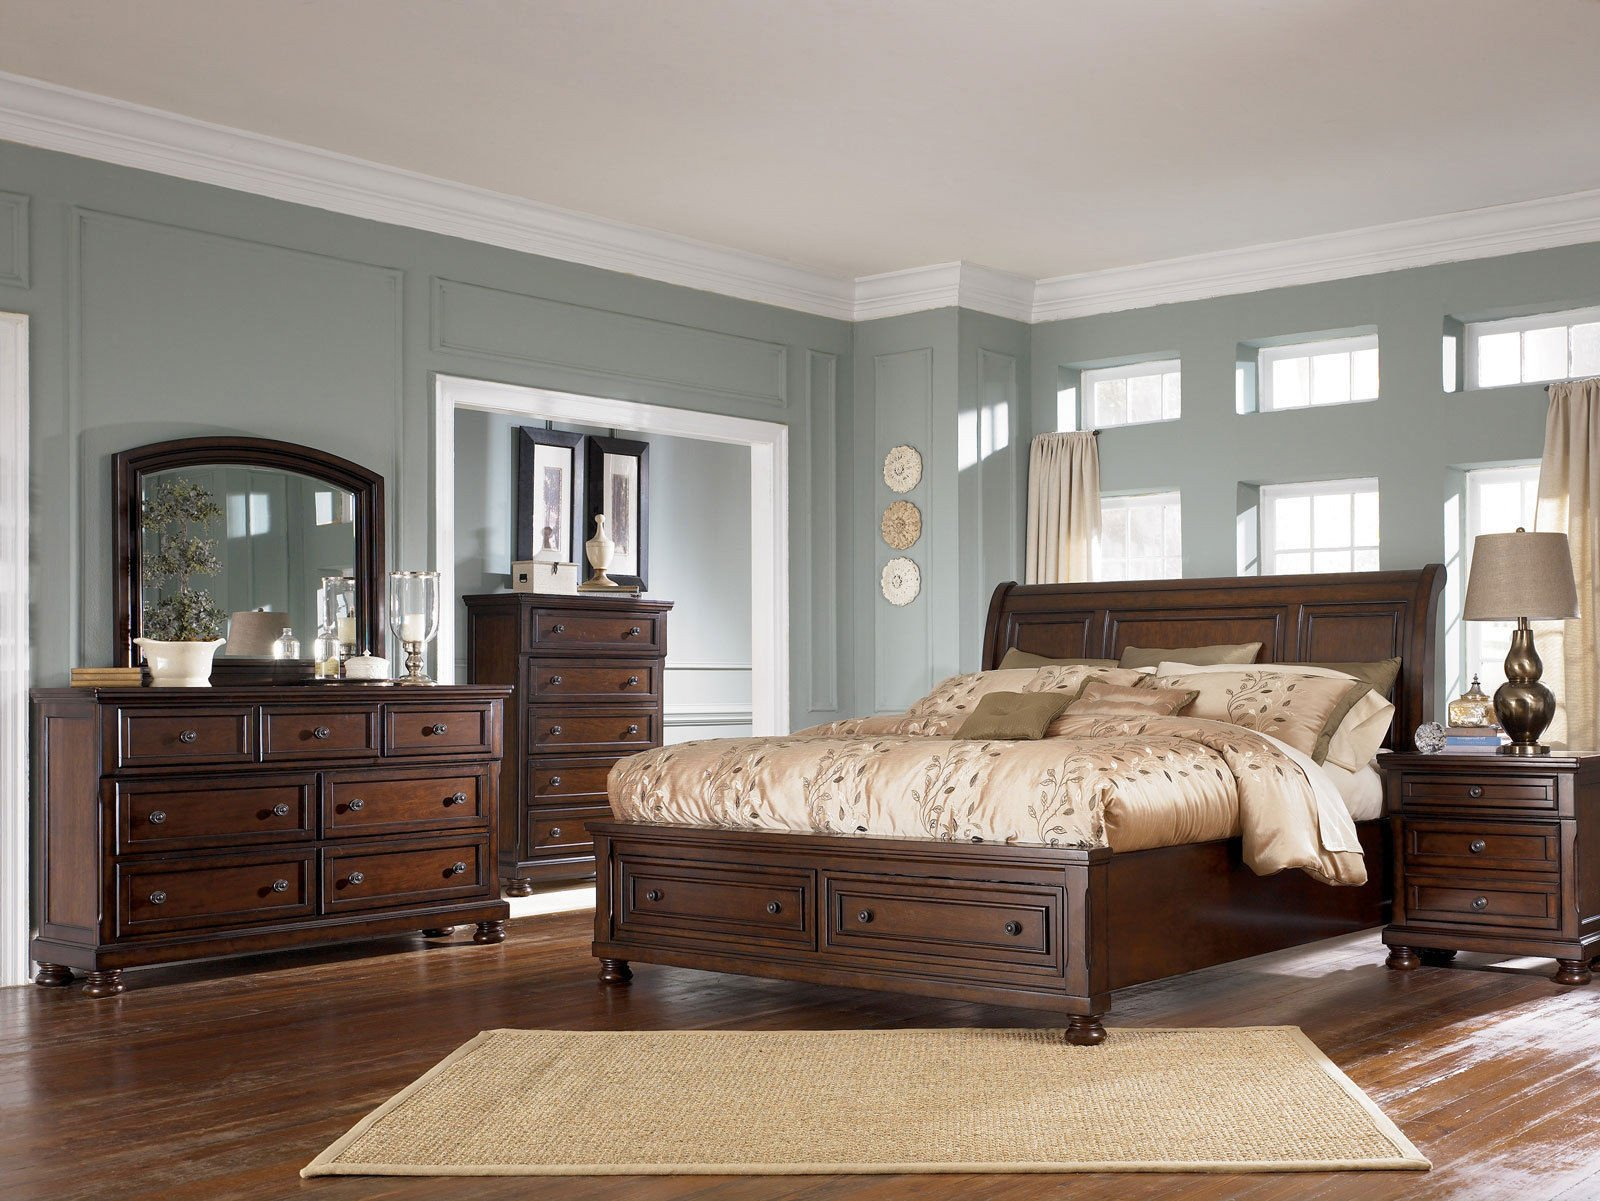 Ashley Millennium Bedroom Set Beautiful Bedroom Royal Queen Sleigh Bed Frame with Elegant Creative